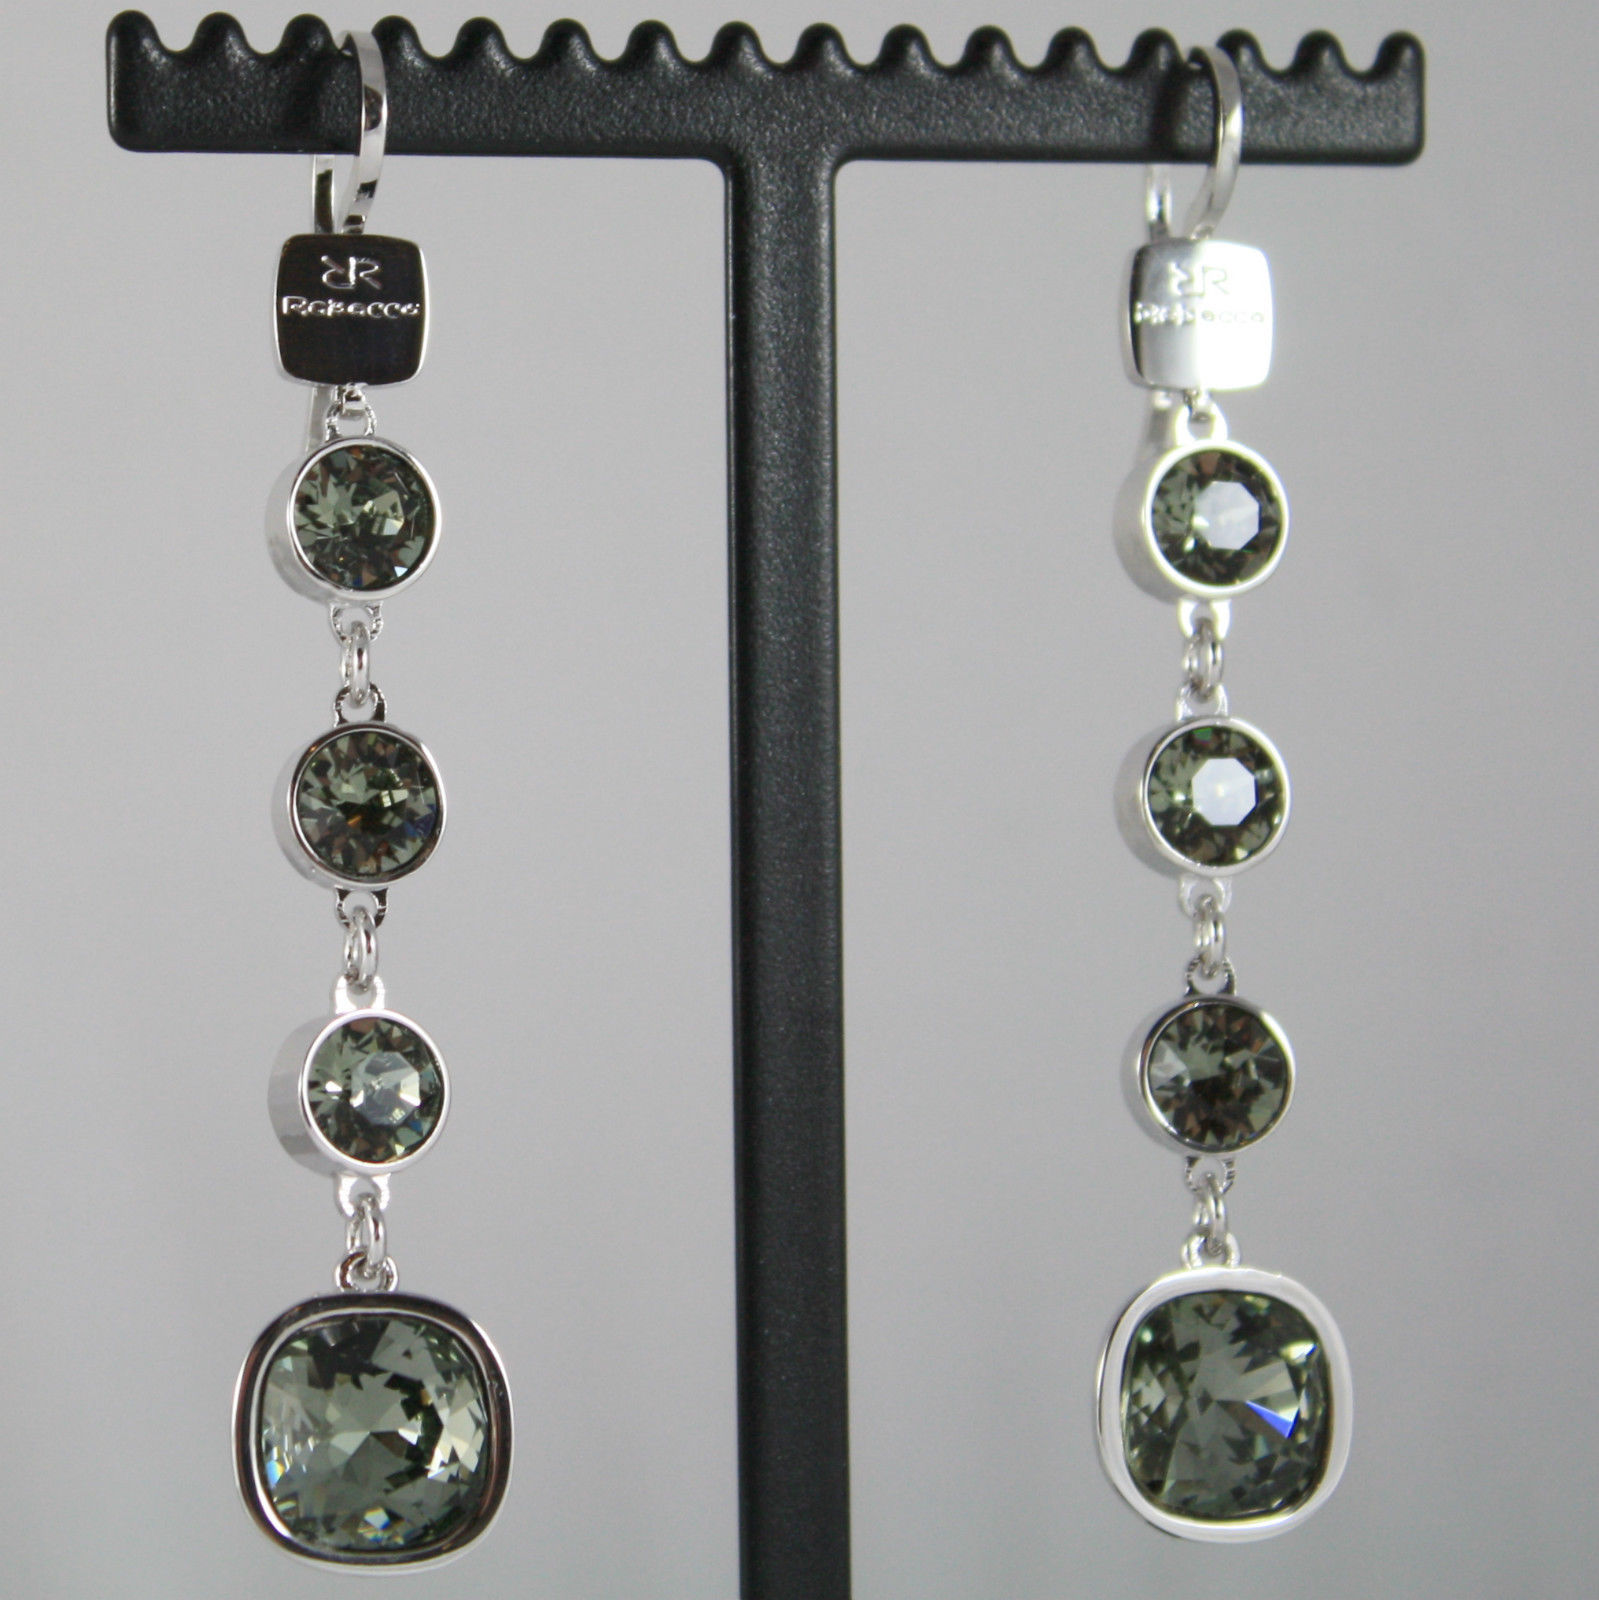 RHODIUM BRONZE REBECCA PENDANT EARRINGS WITH GRAY CRYSTAL CT 13.00 MADE IN ITALY